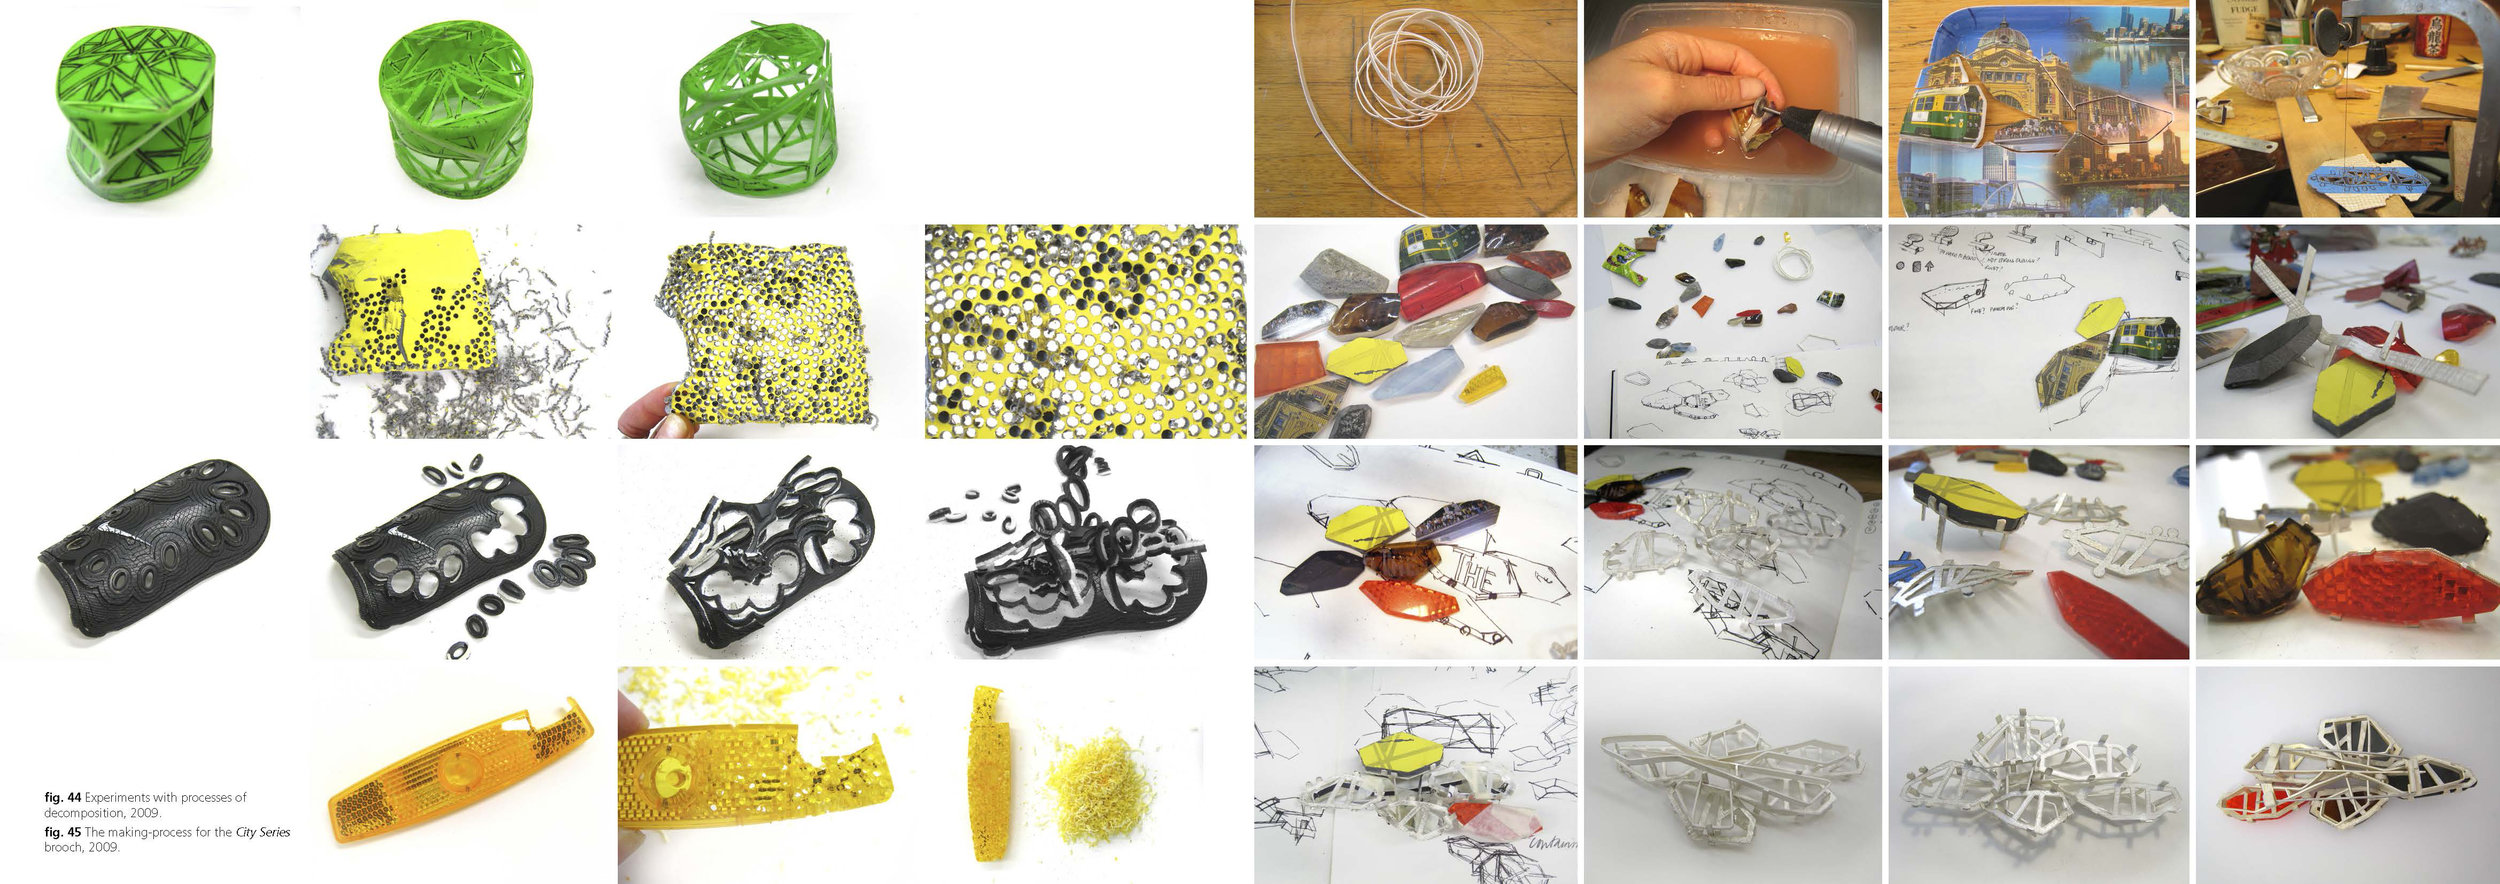 Jacqui Chan_jewellery in the urban milieu_part 1_intro + project milieu 01_Page_65.jpg